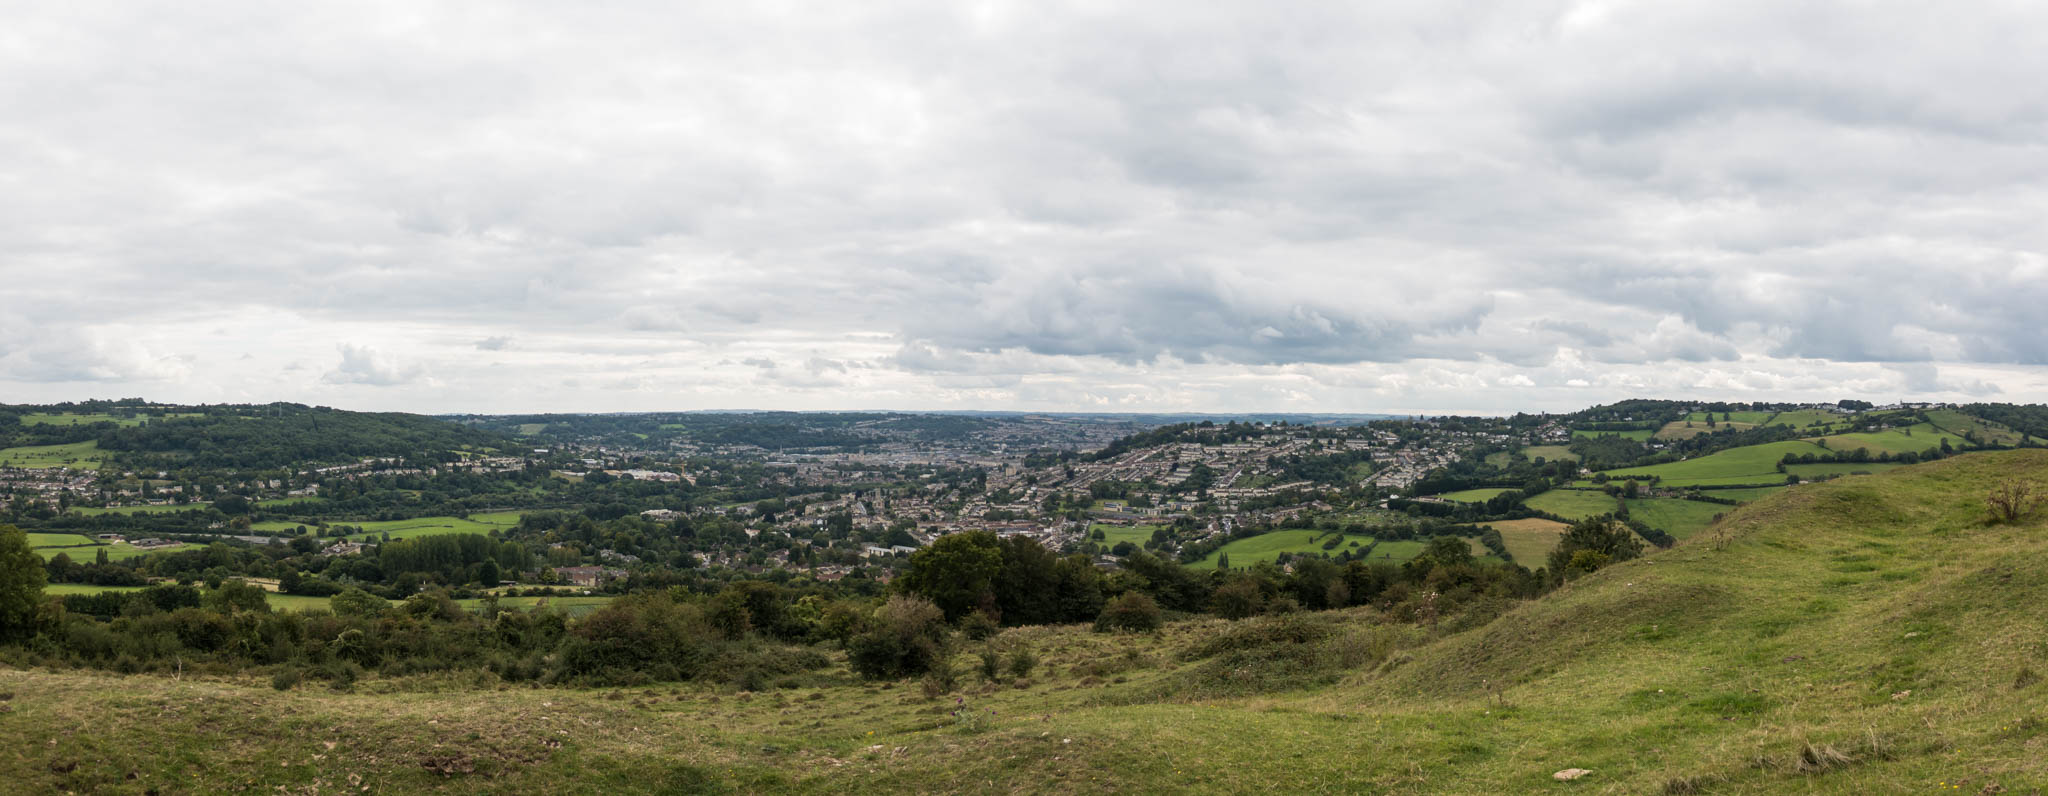 20190907-153822-Solsburry-Hill-Blick-Bath